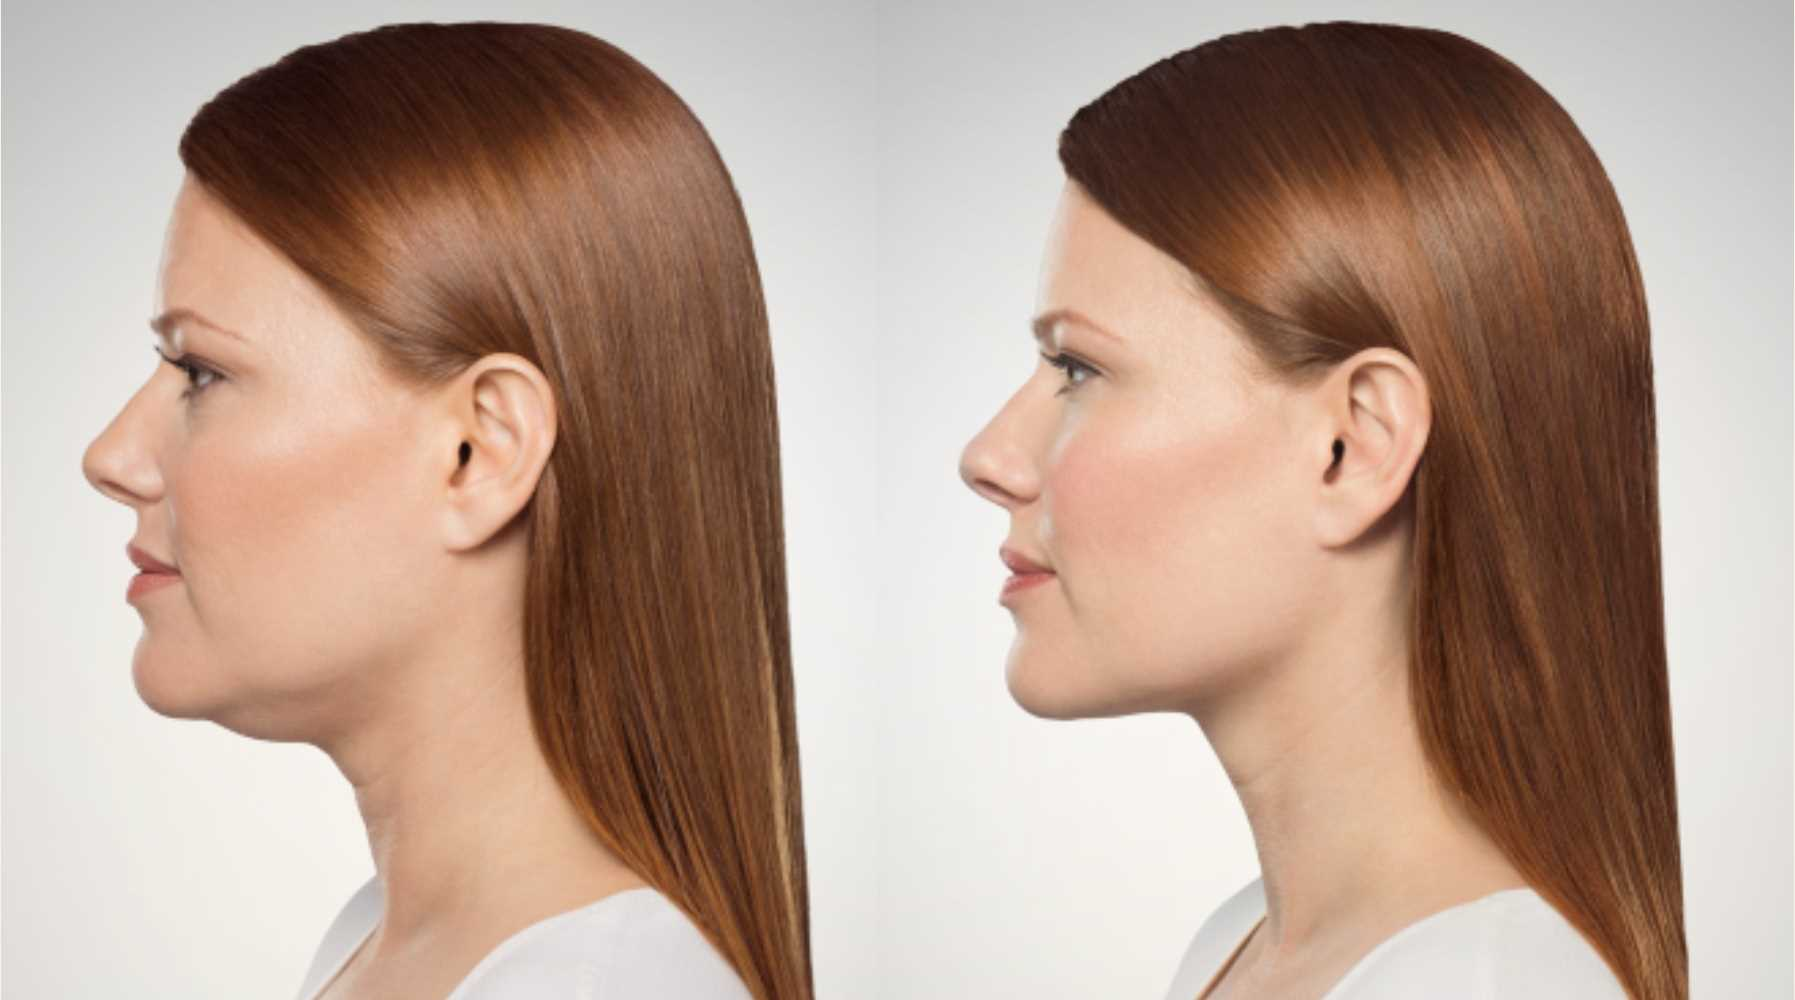 Double Chin Treatment - Kybella Springfield MO